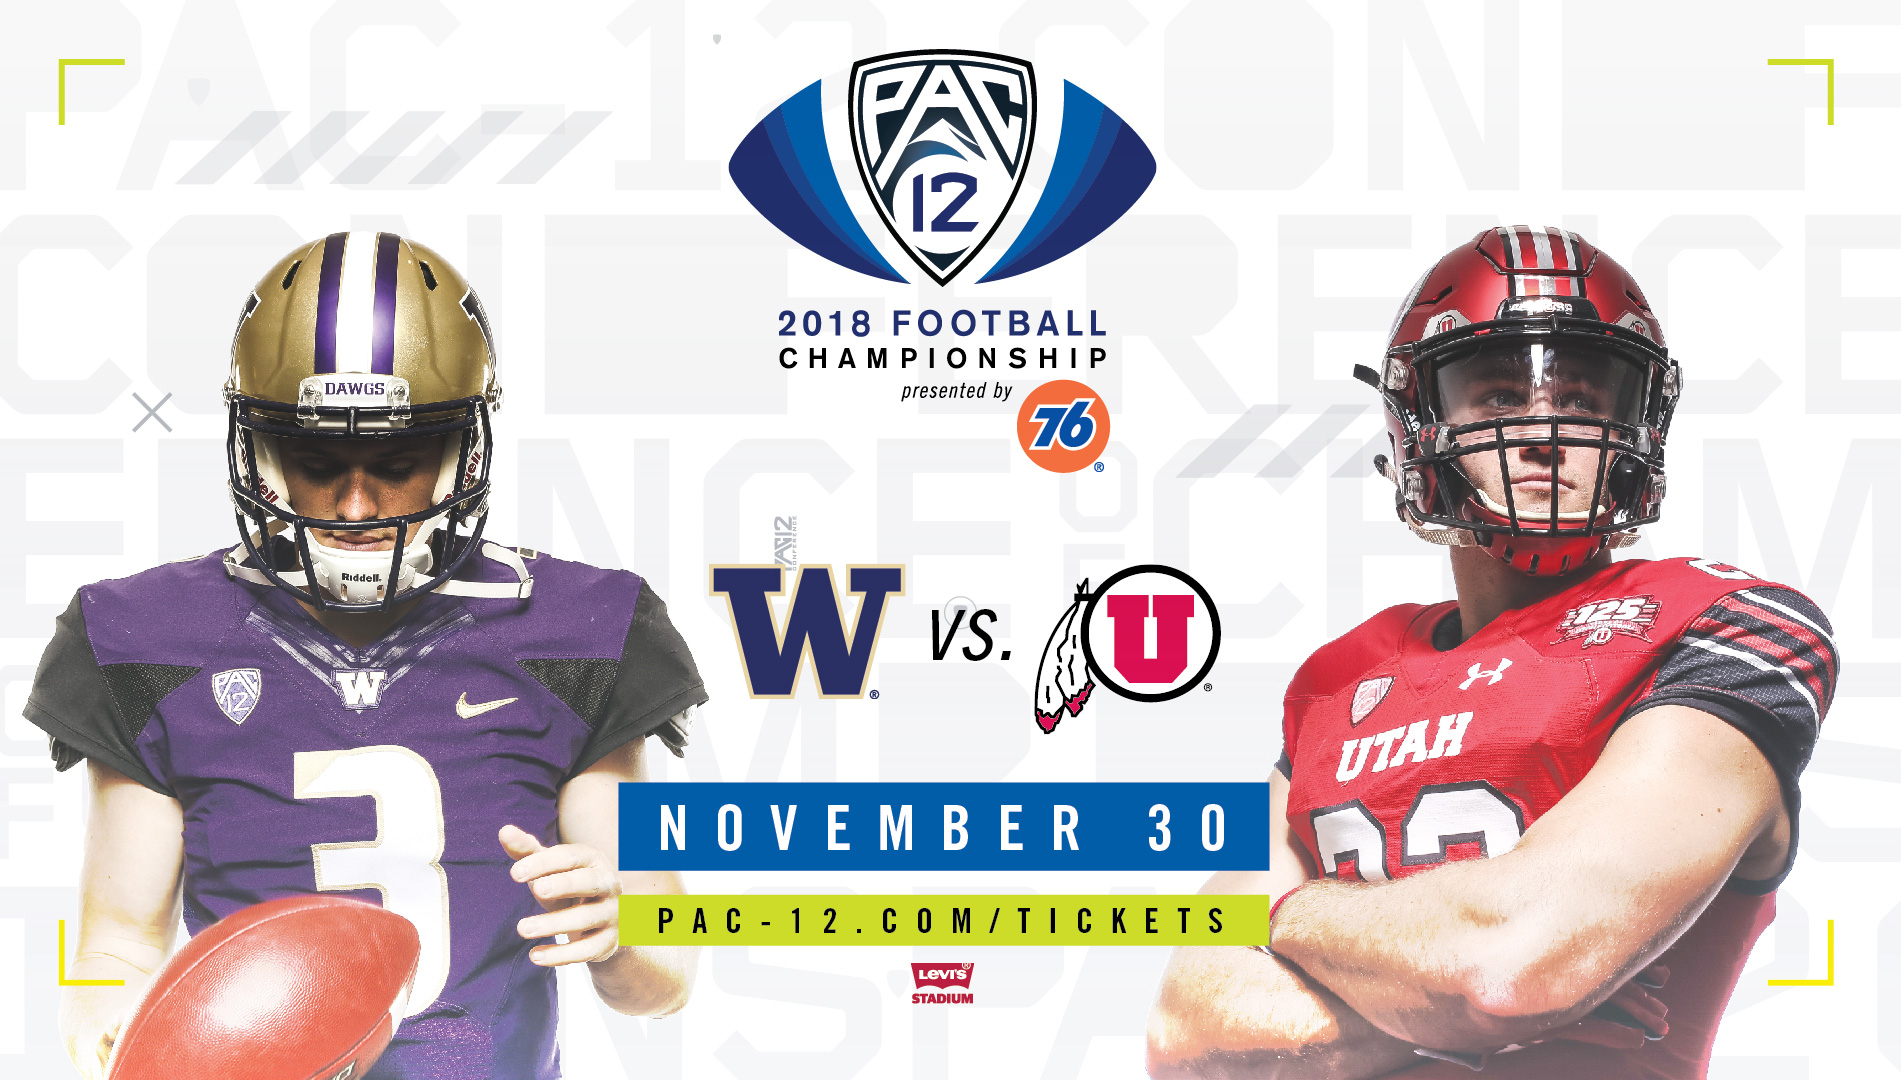 Utes and Huskies clash in Pac-12 Football Championship  6388ec440